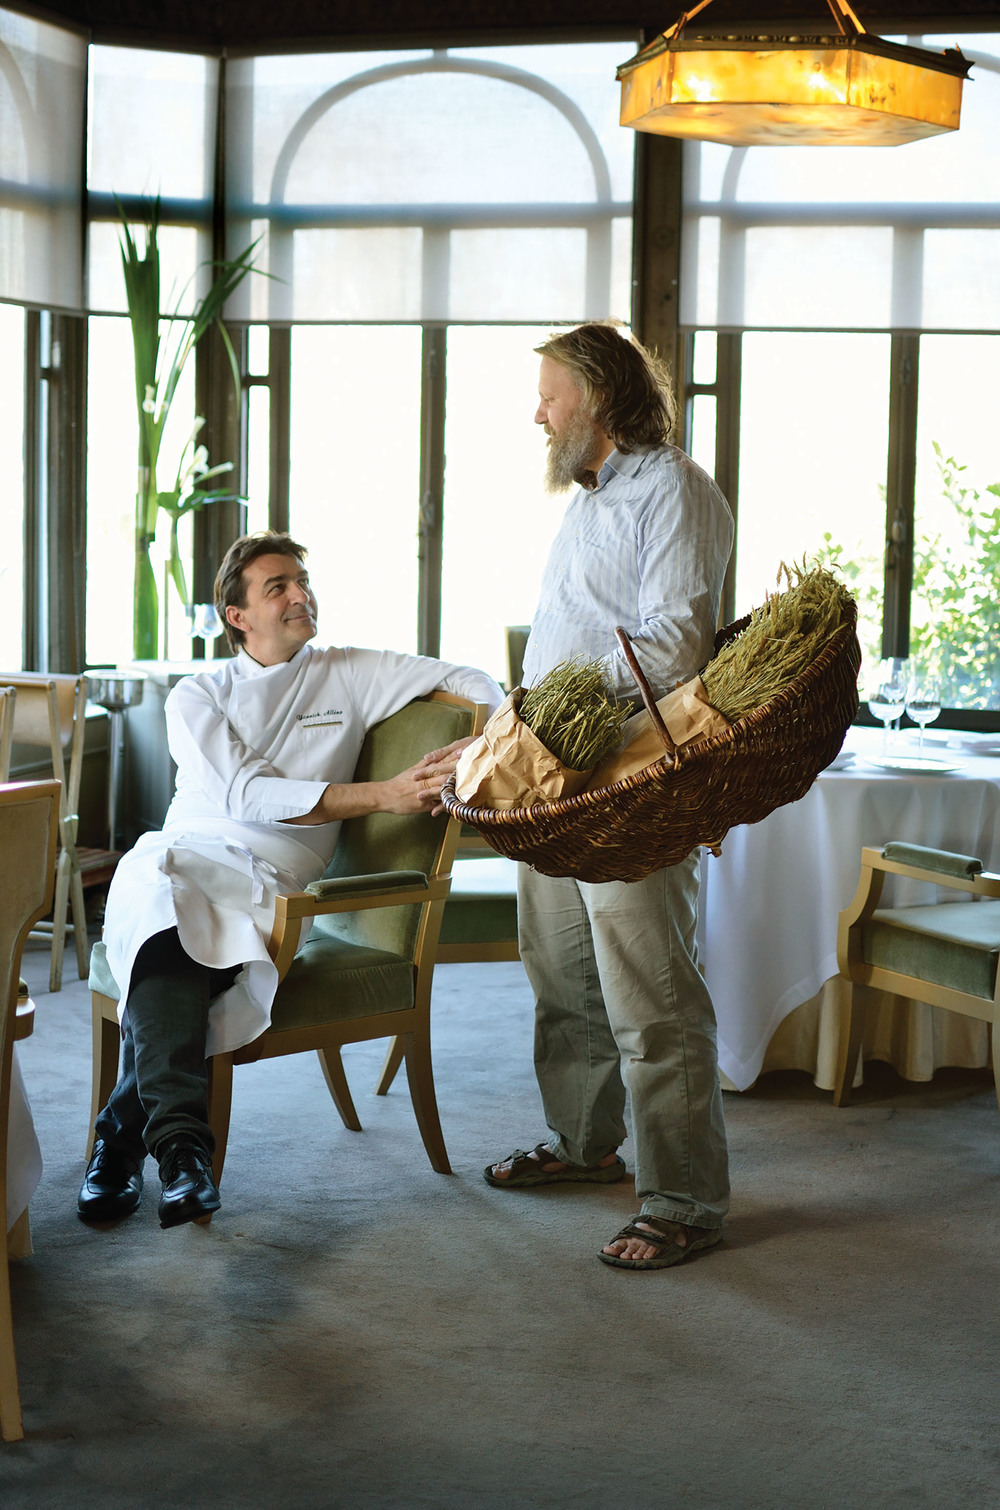 Stéphane talks to world renowned chef Yannick Alléno at Restaurant Ledoyen, one of the oldest restaurants in Paris—a Michelin three star-rated establishment, situated in the square gardens in the eastern part of the Champs-Élysées.